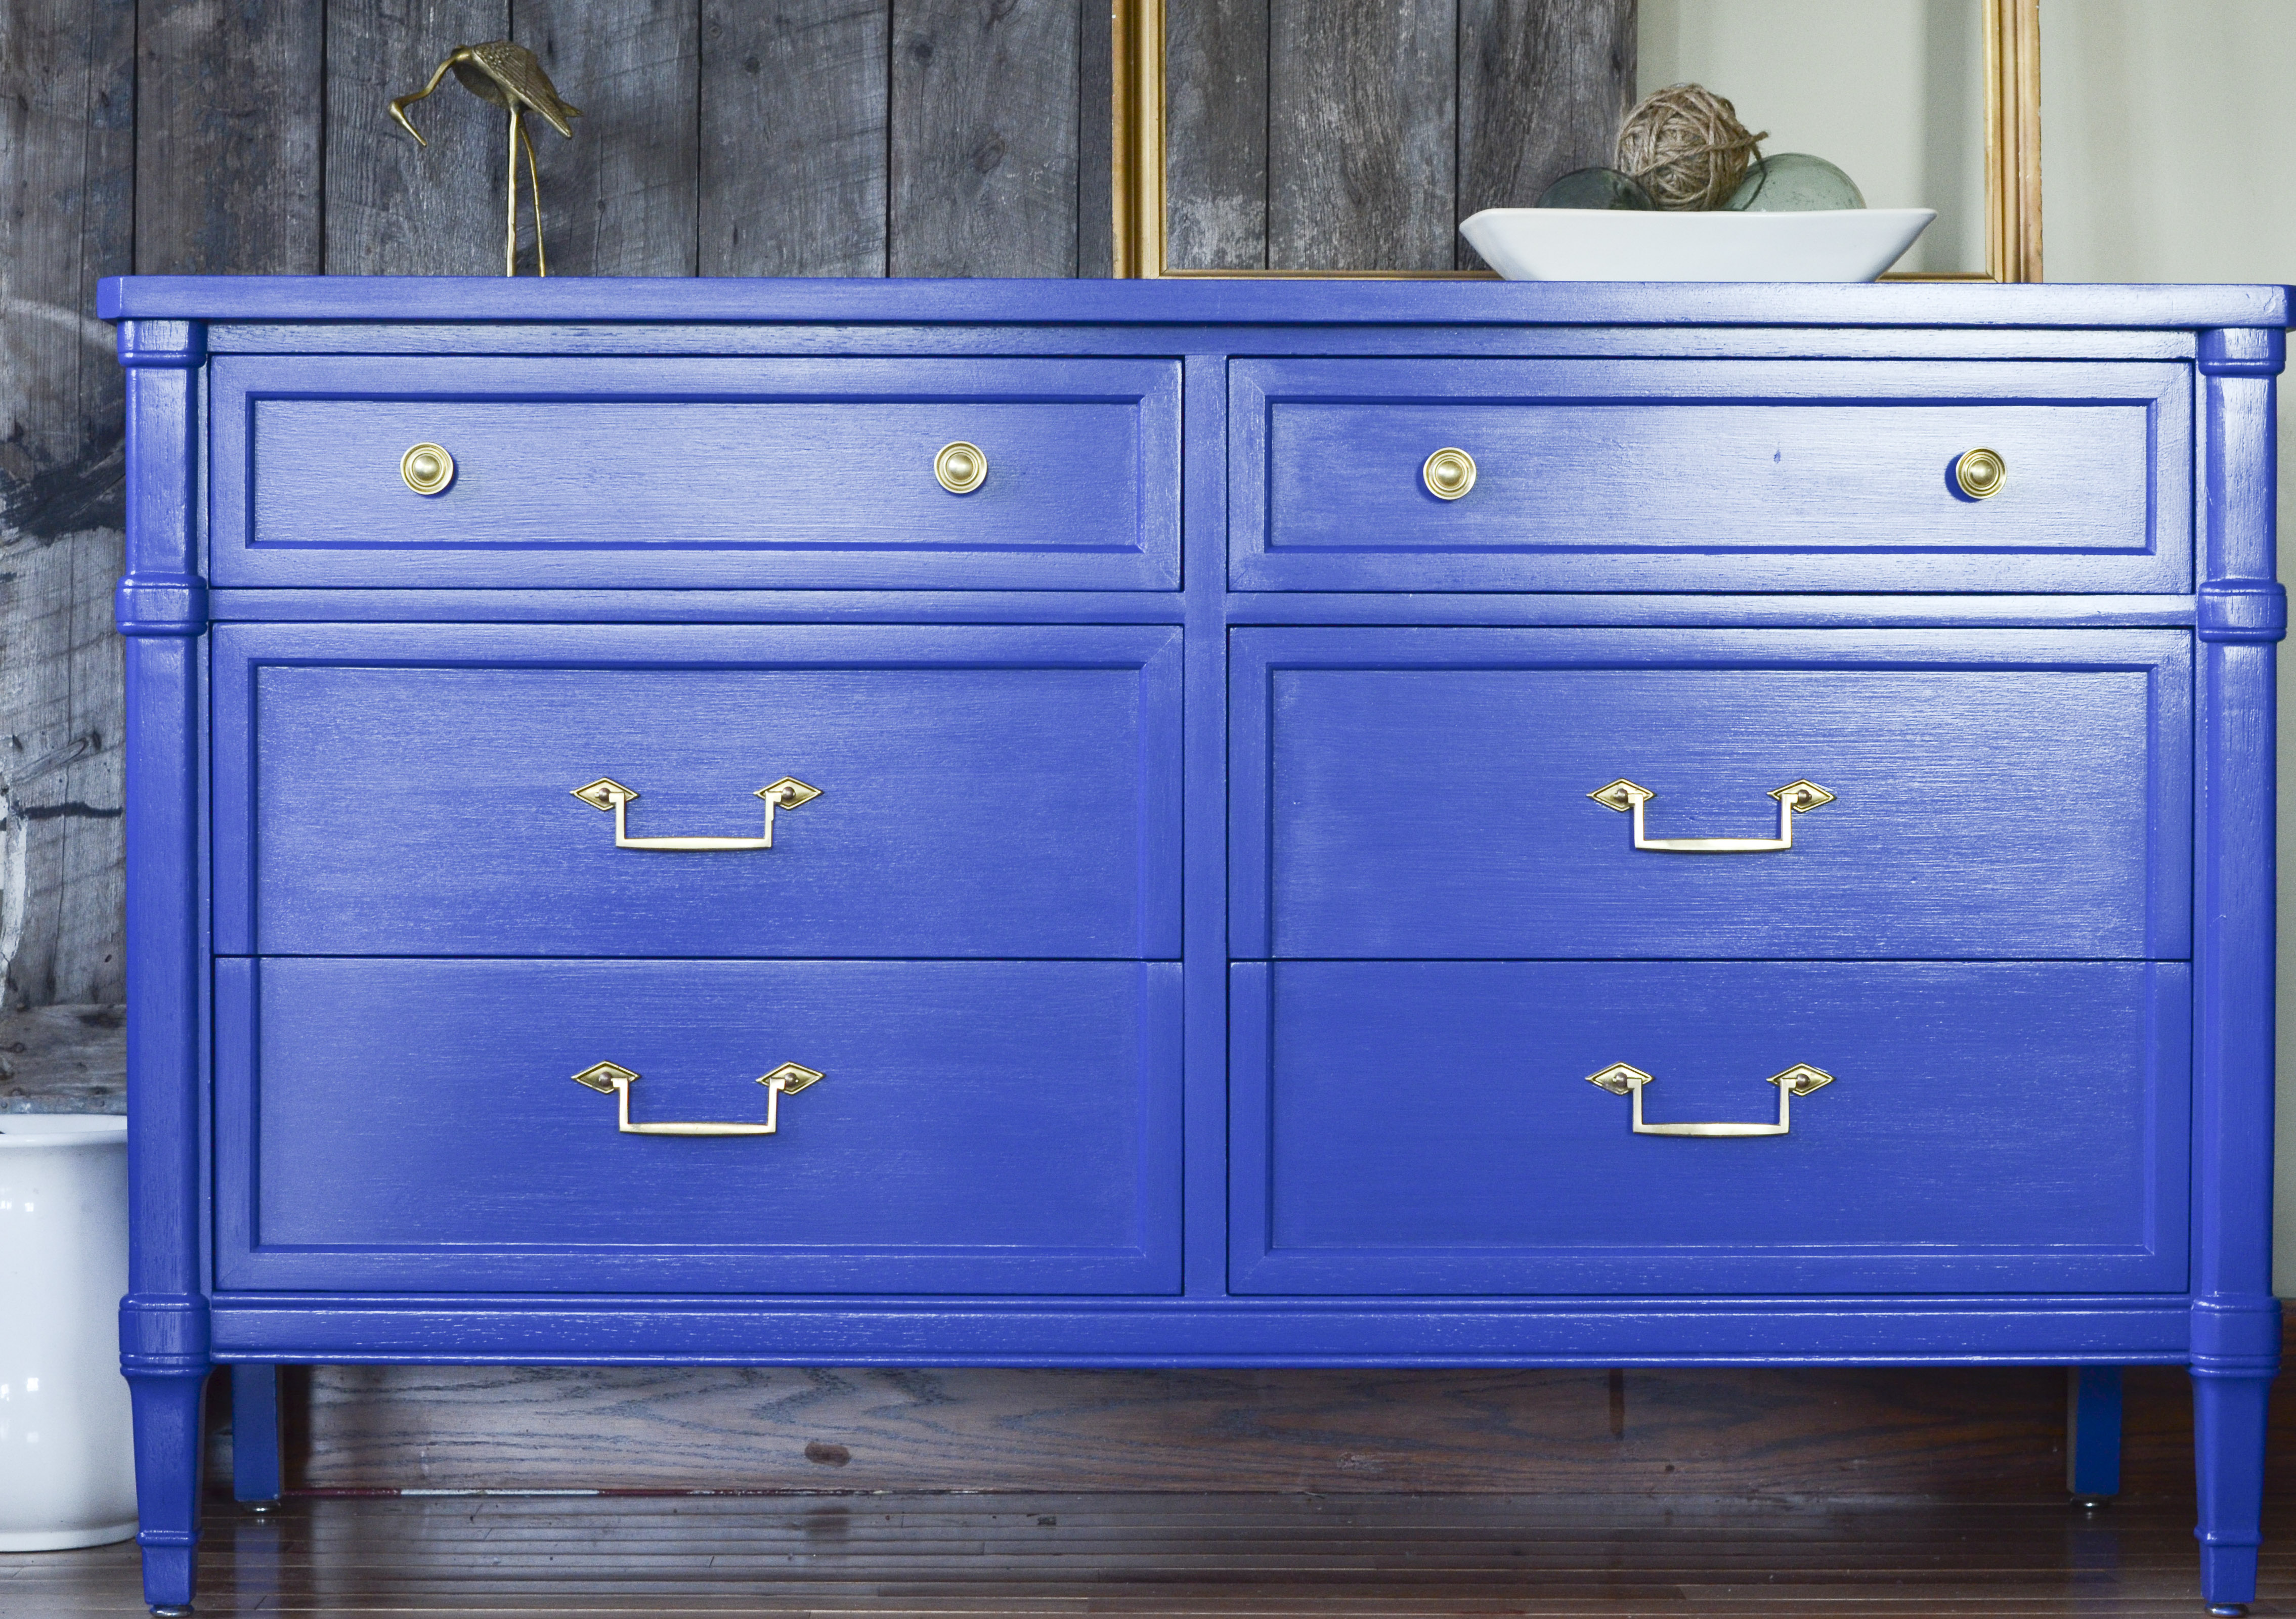 Sweet Blue General Finishes Milk General Finishes Coat Satin When It All Comes Toger General Finishes Coat Flat Vs Satin General Finishes Coat Where To Buy houzz 01 General Finishes Top Coat